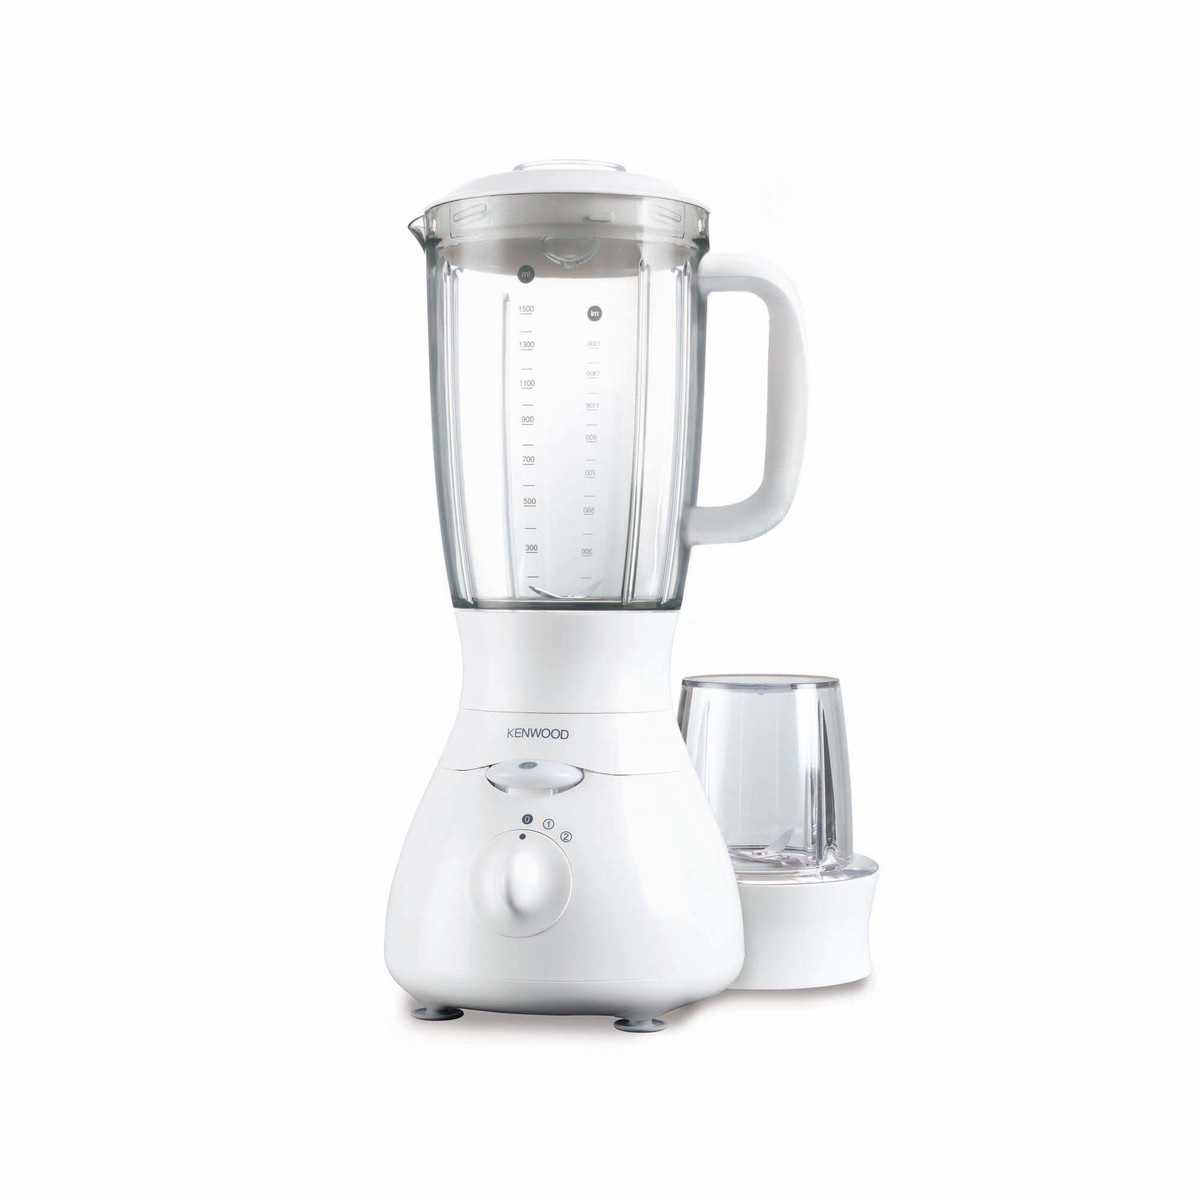 Kenwood Blender 1.5lts